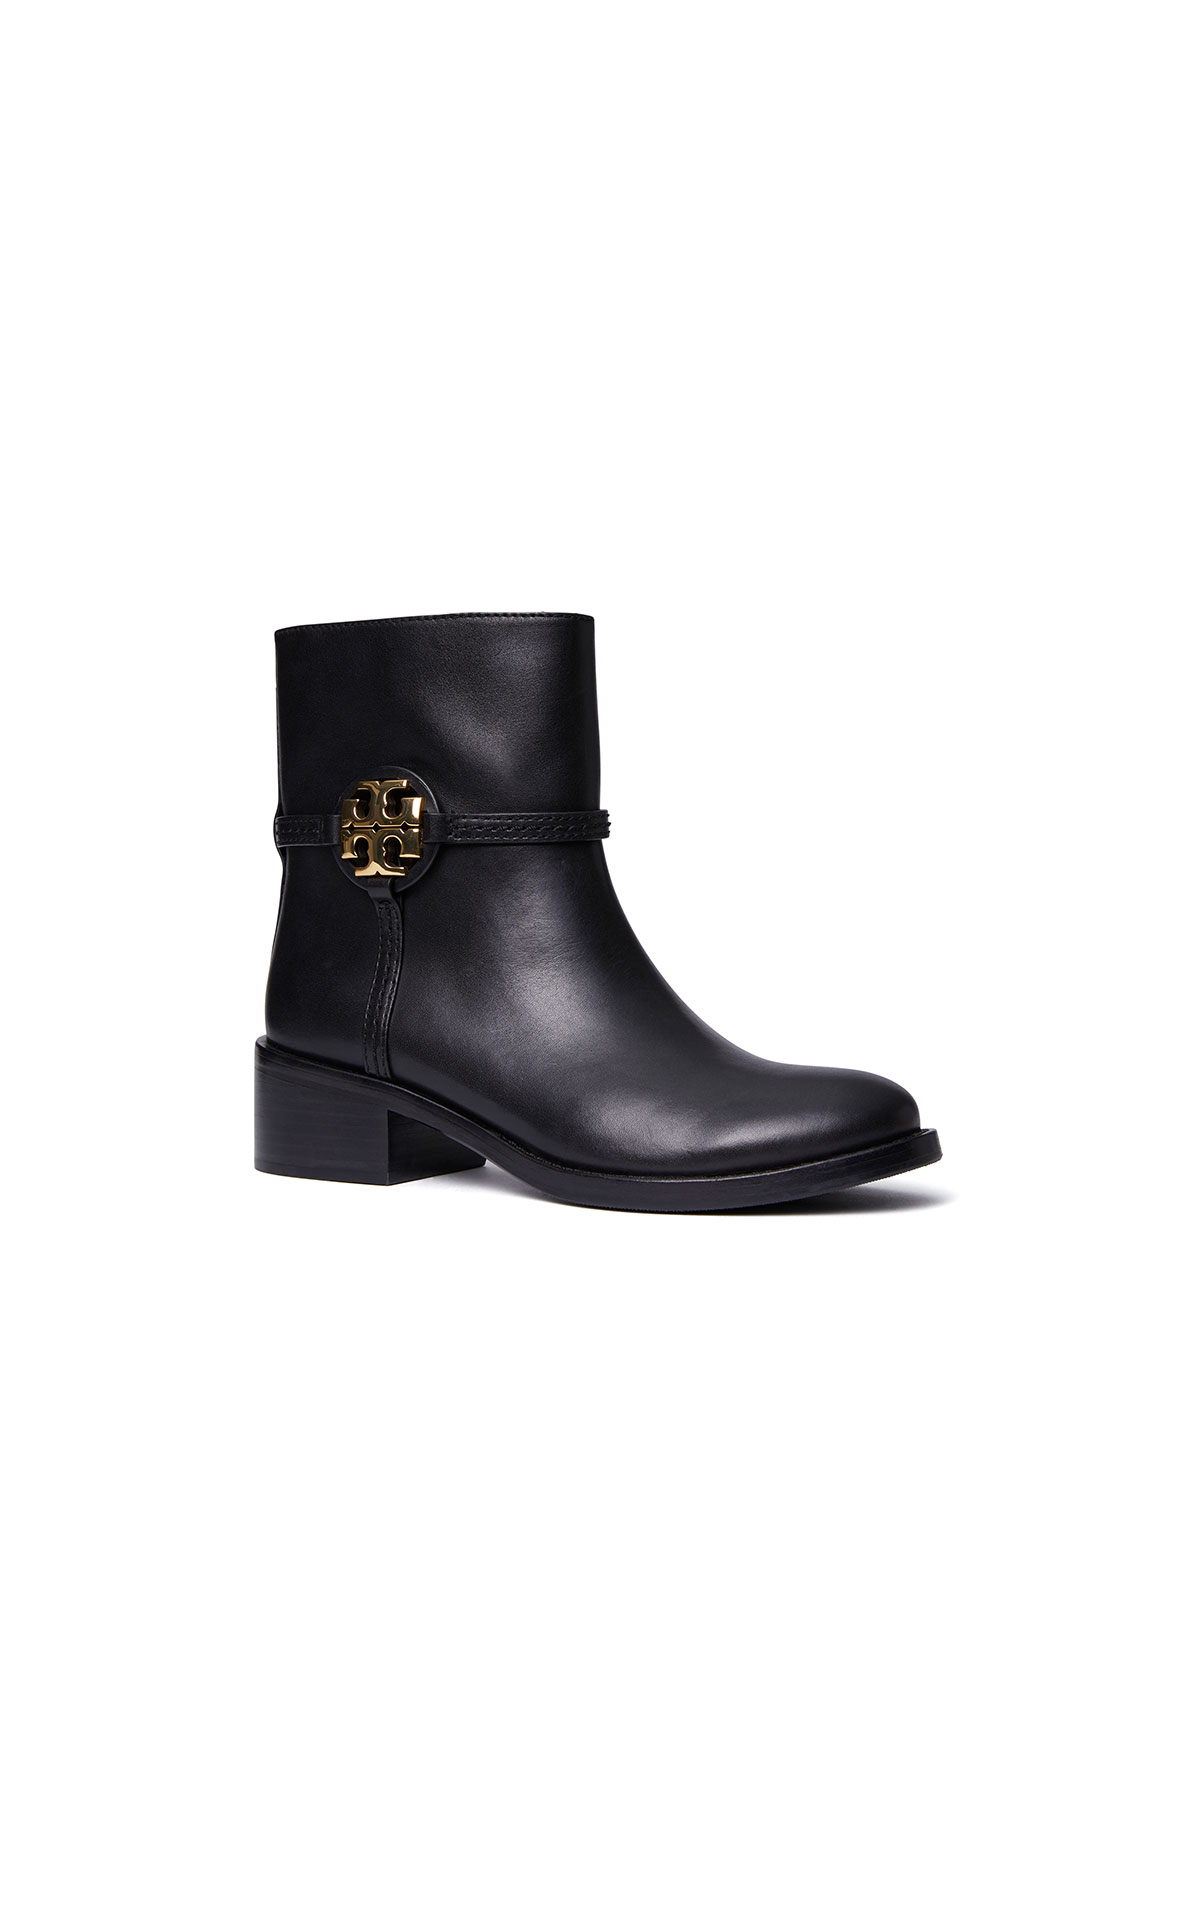 Tory Burch Miller 45mm bootie in black at The Bicester Village Shopping Collection